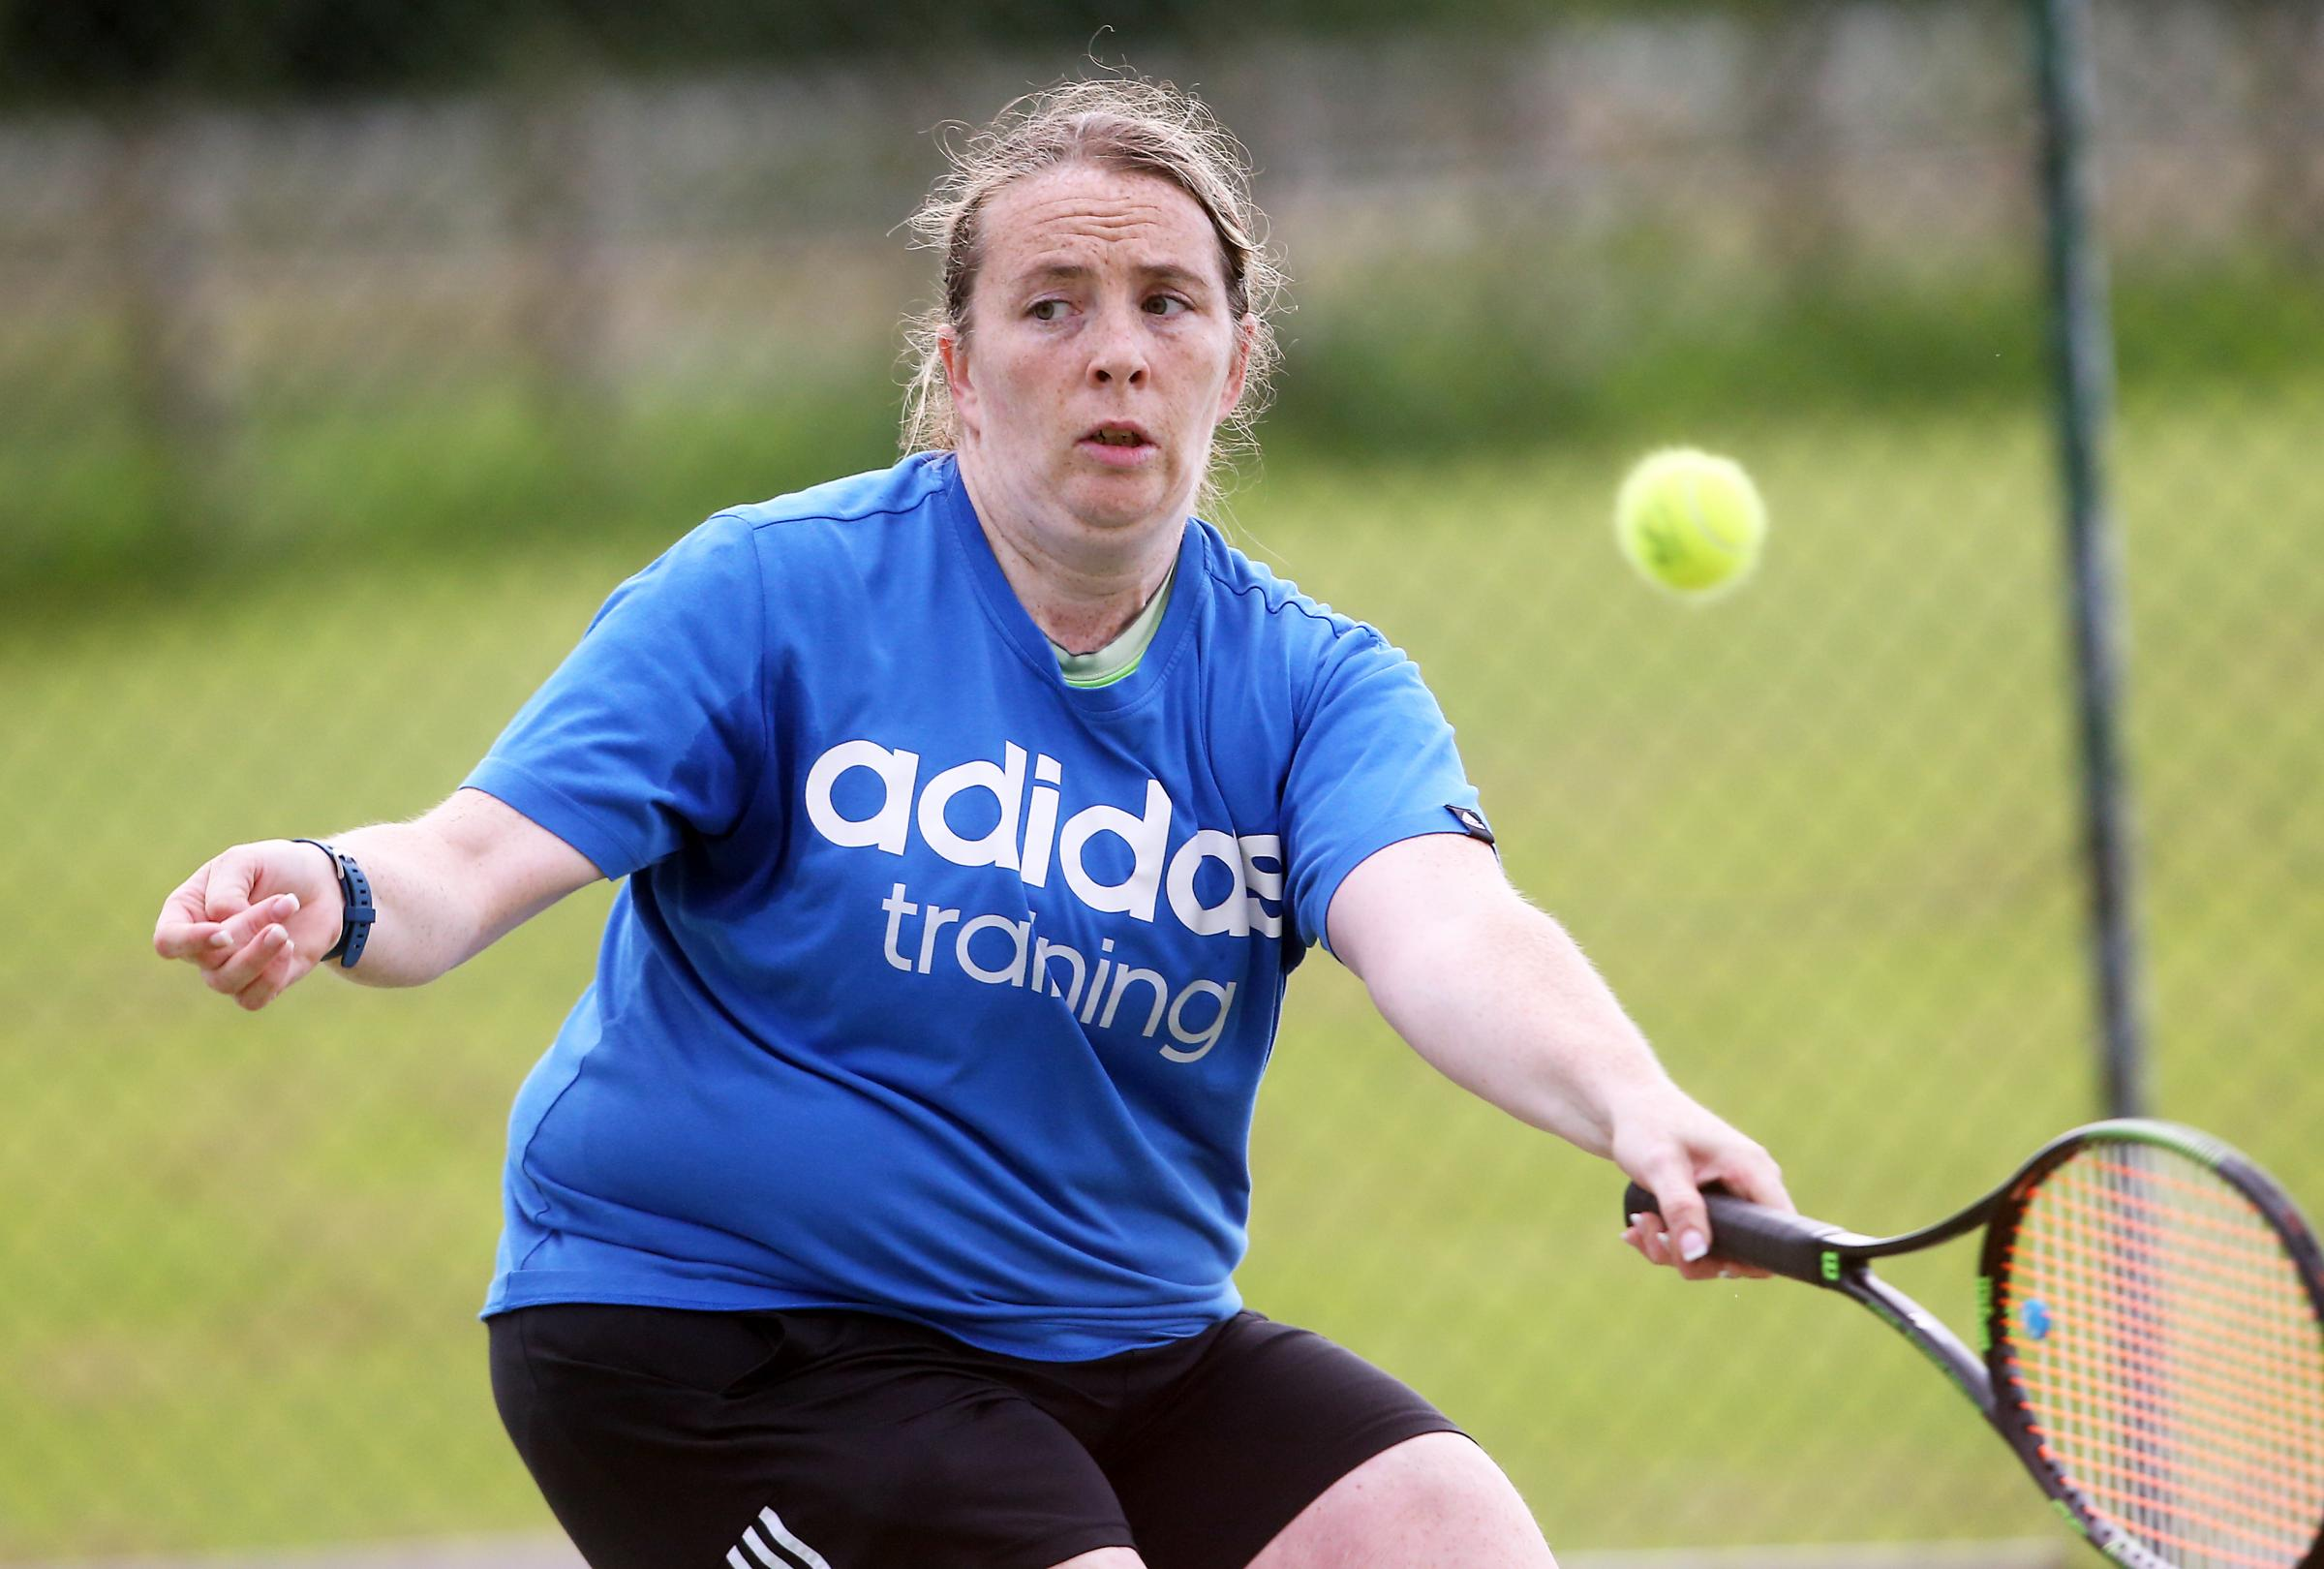 Donna McSorley making a forehand return during the Fermanagh Open Tennis Championships in Irvinestown.